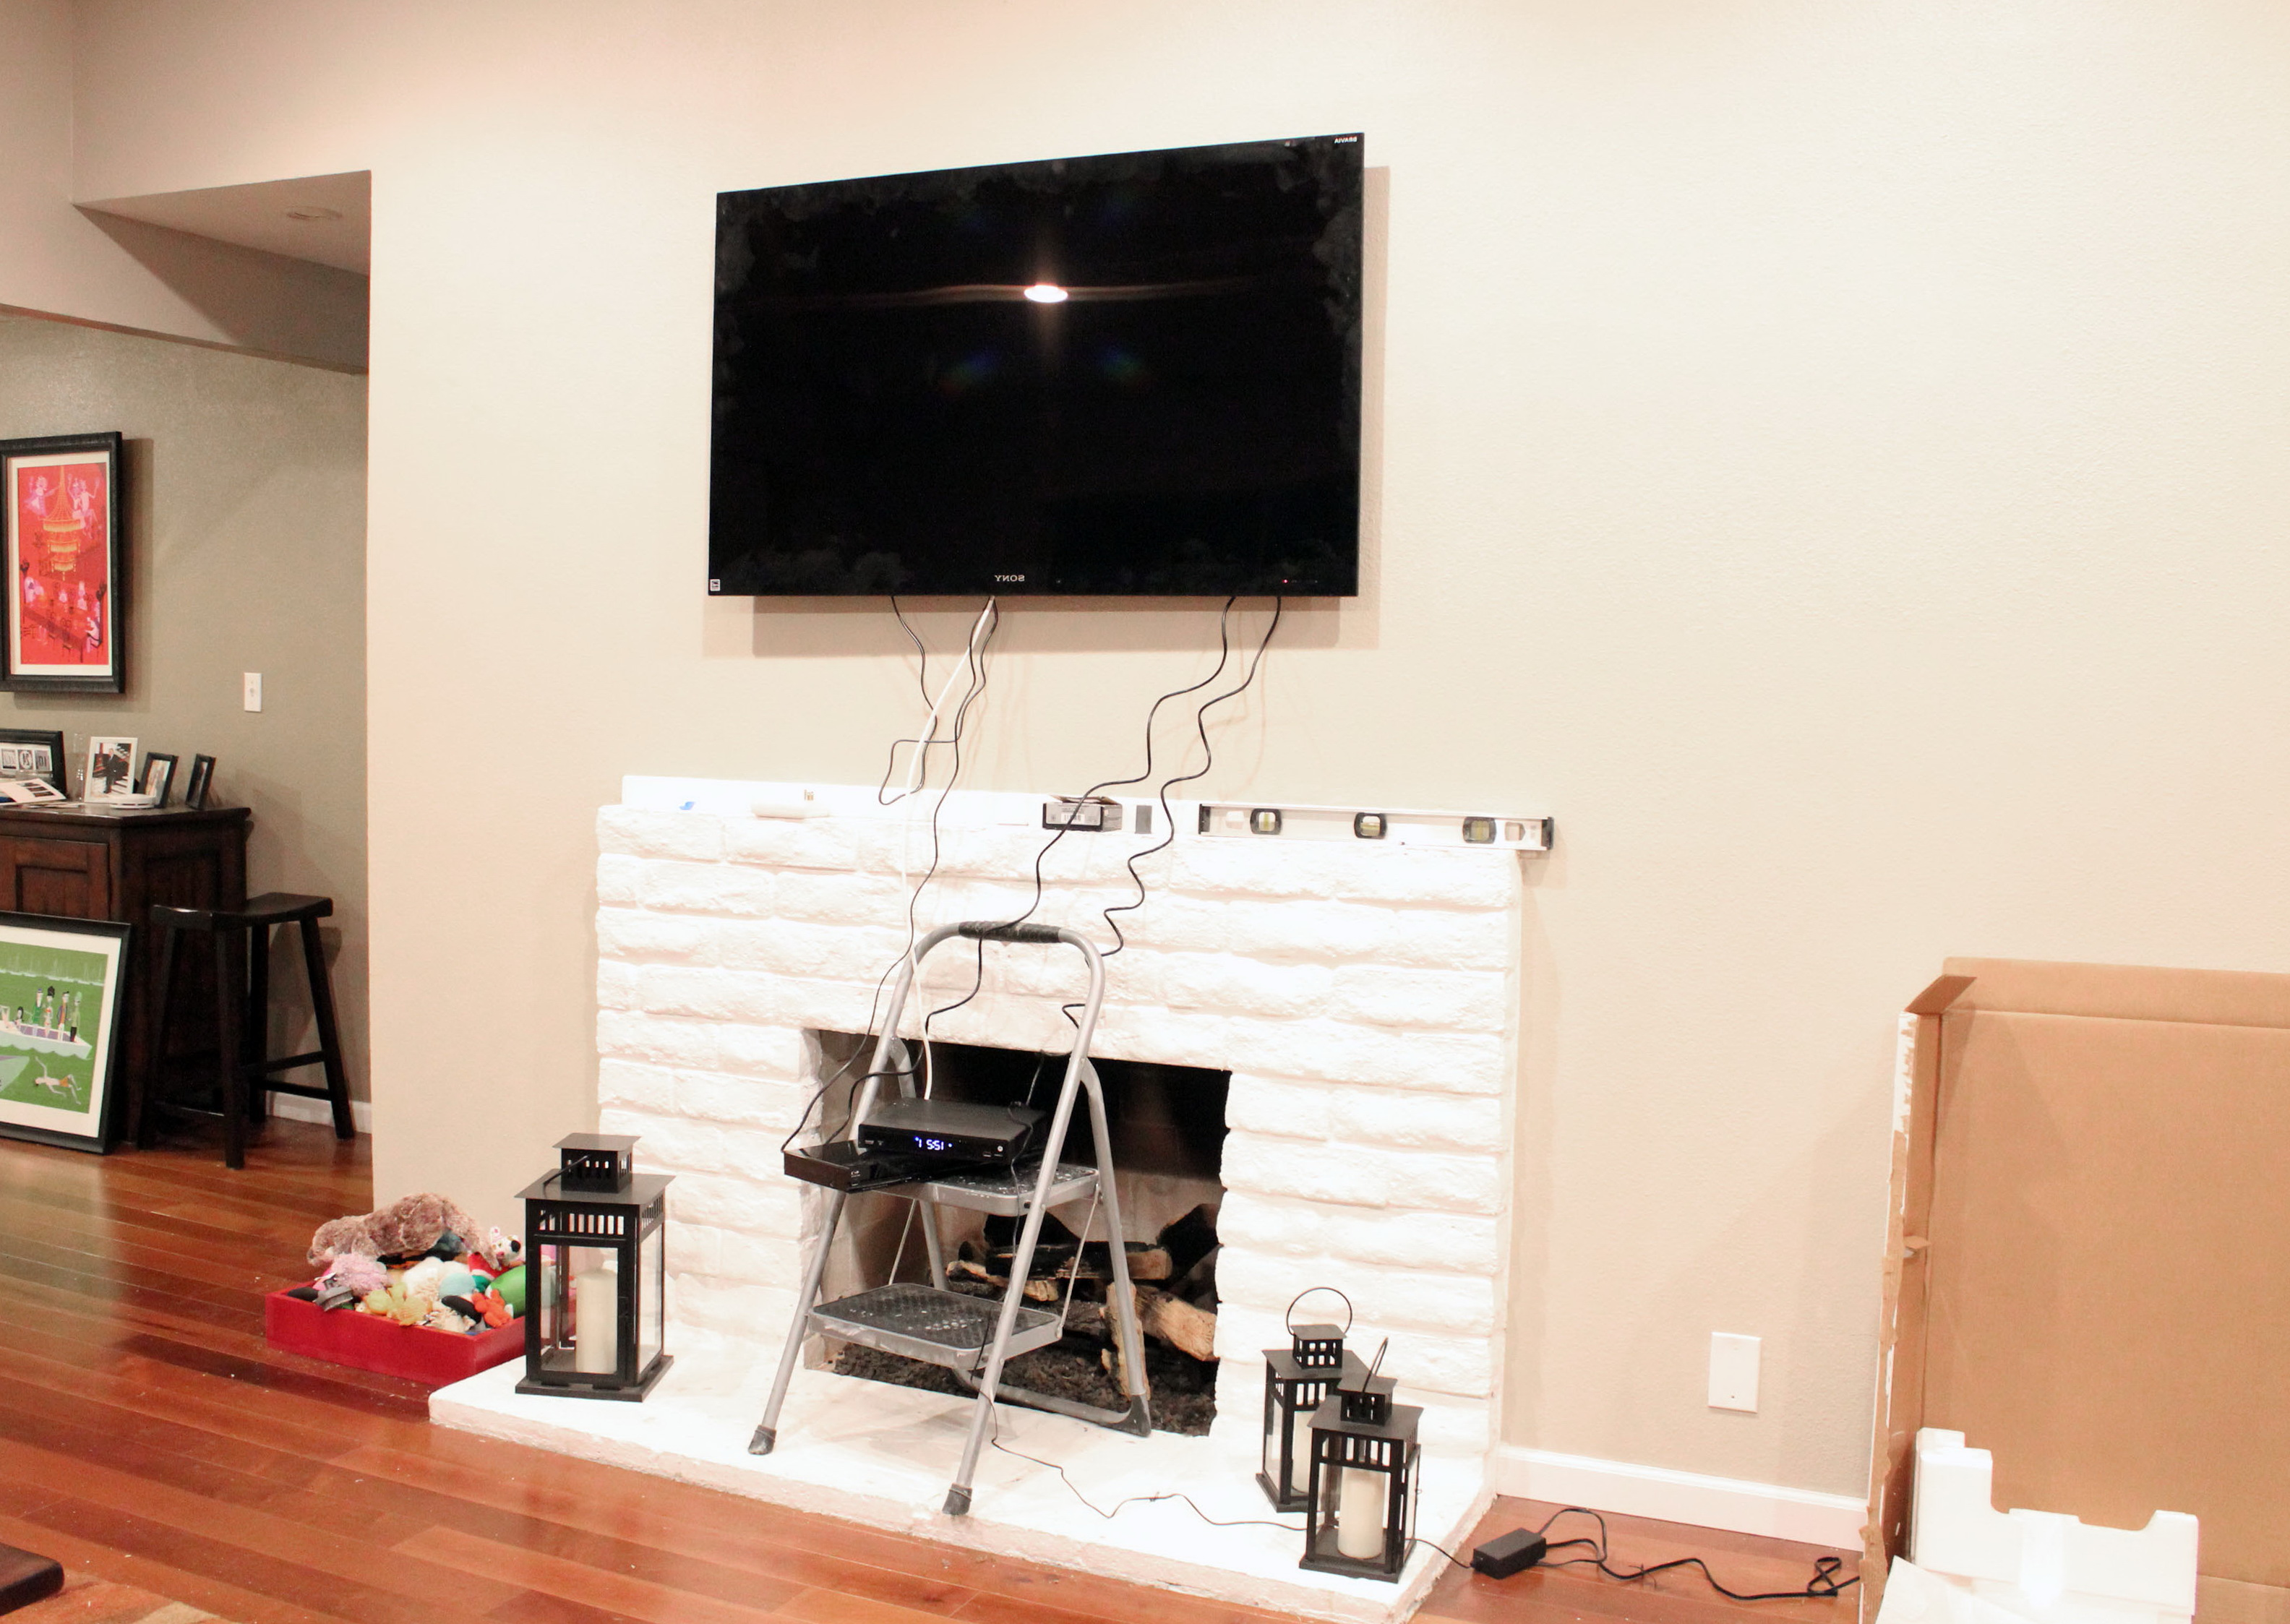 Tv Mounted Above Fireplace Where To Put Cable Box Home